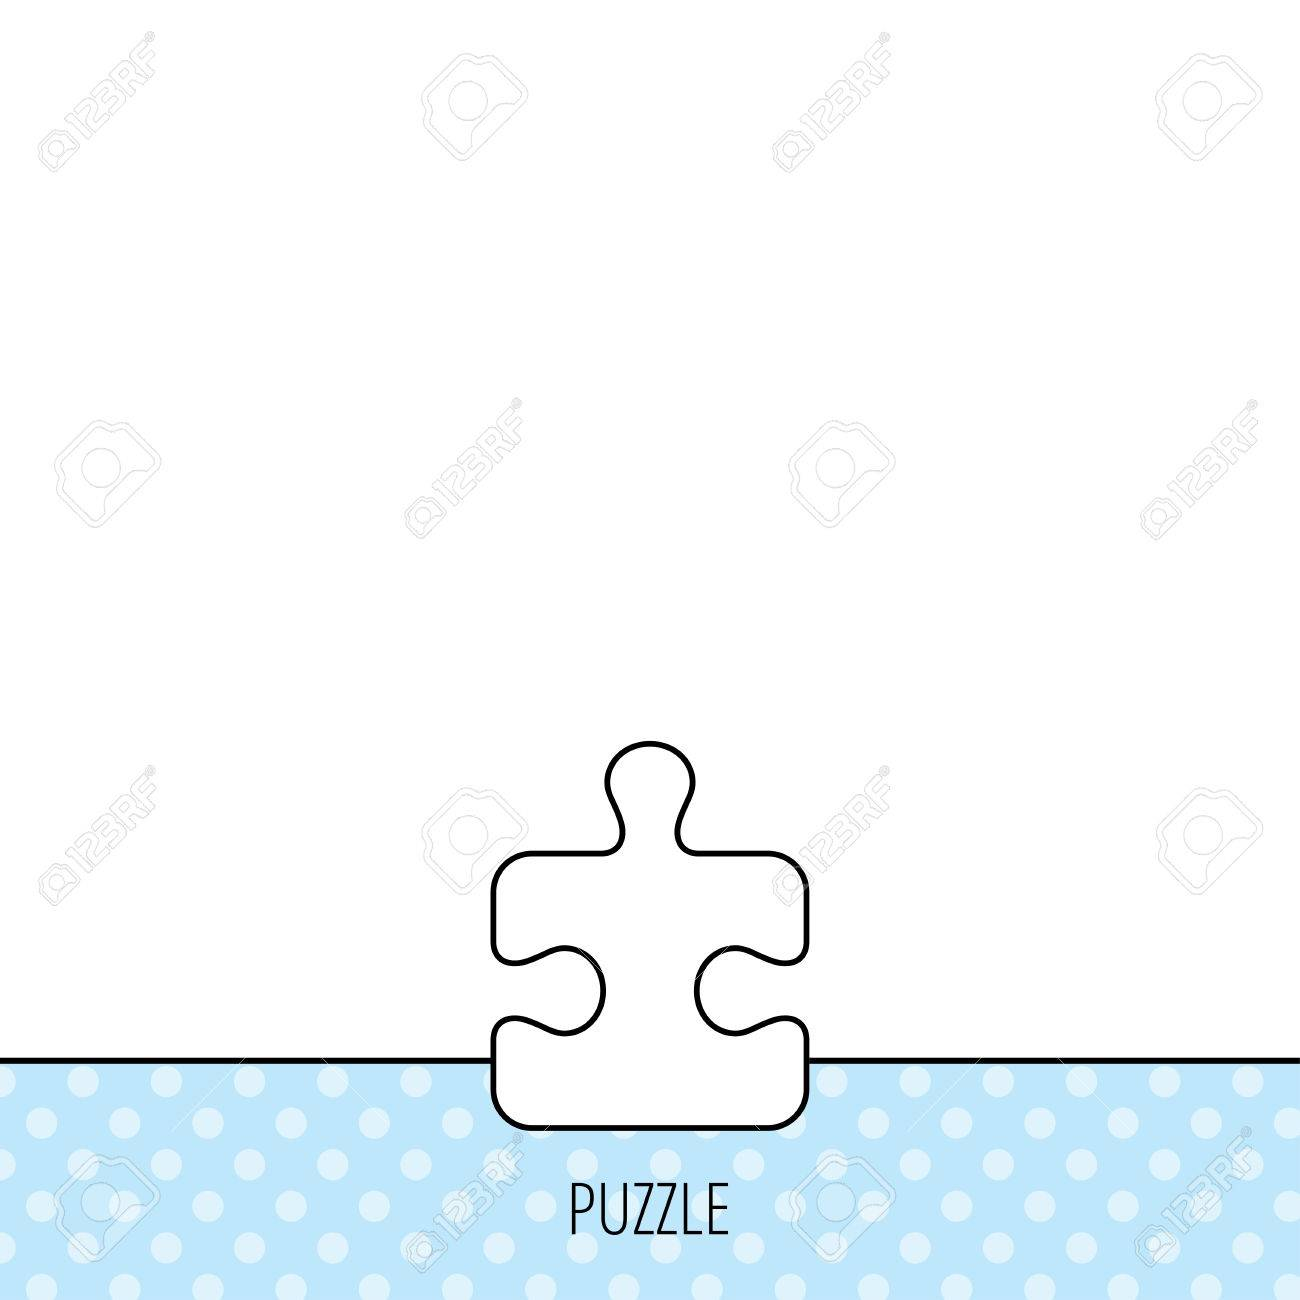 Puzzle Icon Jigsaw Logical Game Sign Boardgame Piece Symbol